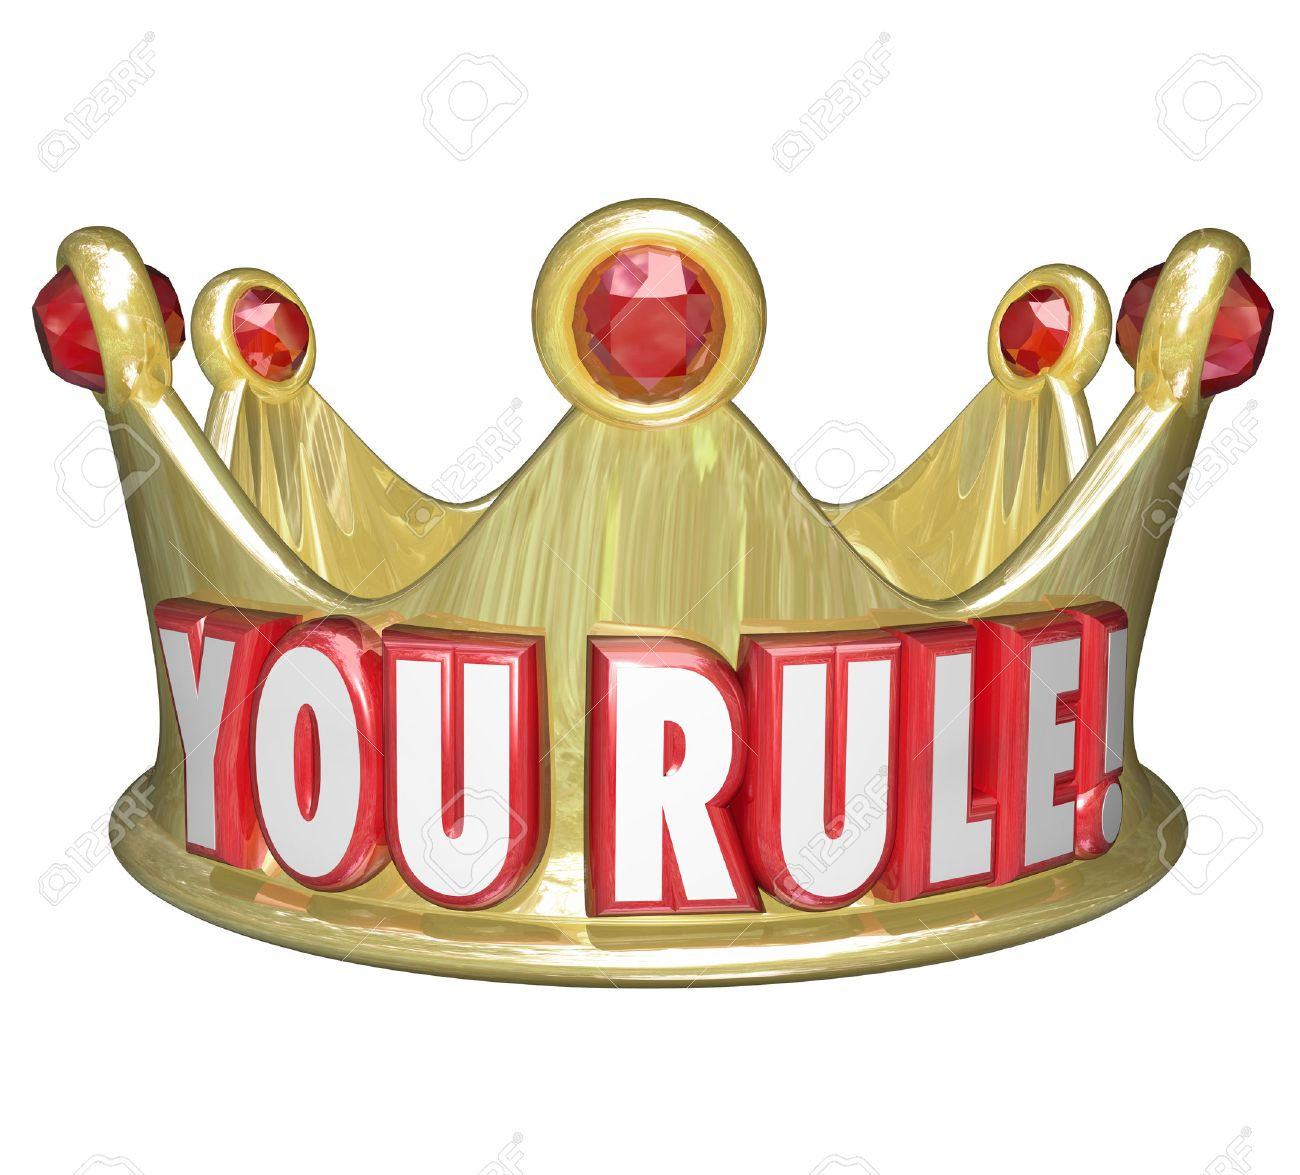 Job Well Done Stock Photos Images. Royalty Free Job Well Done ...